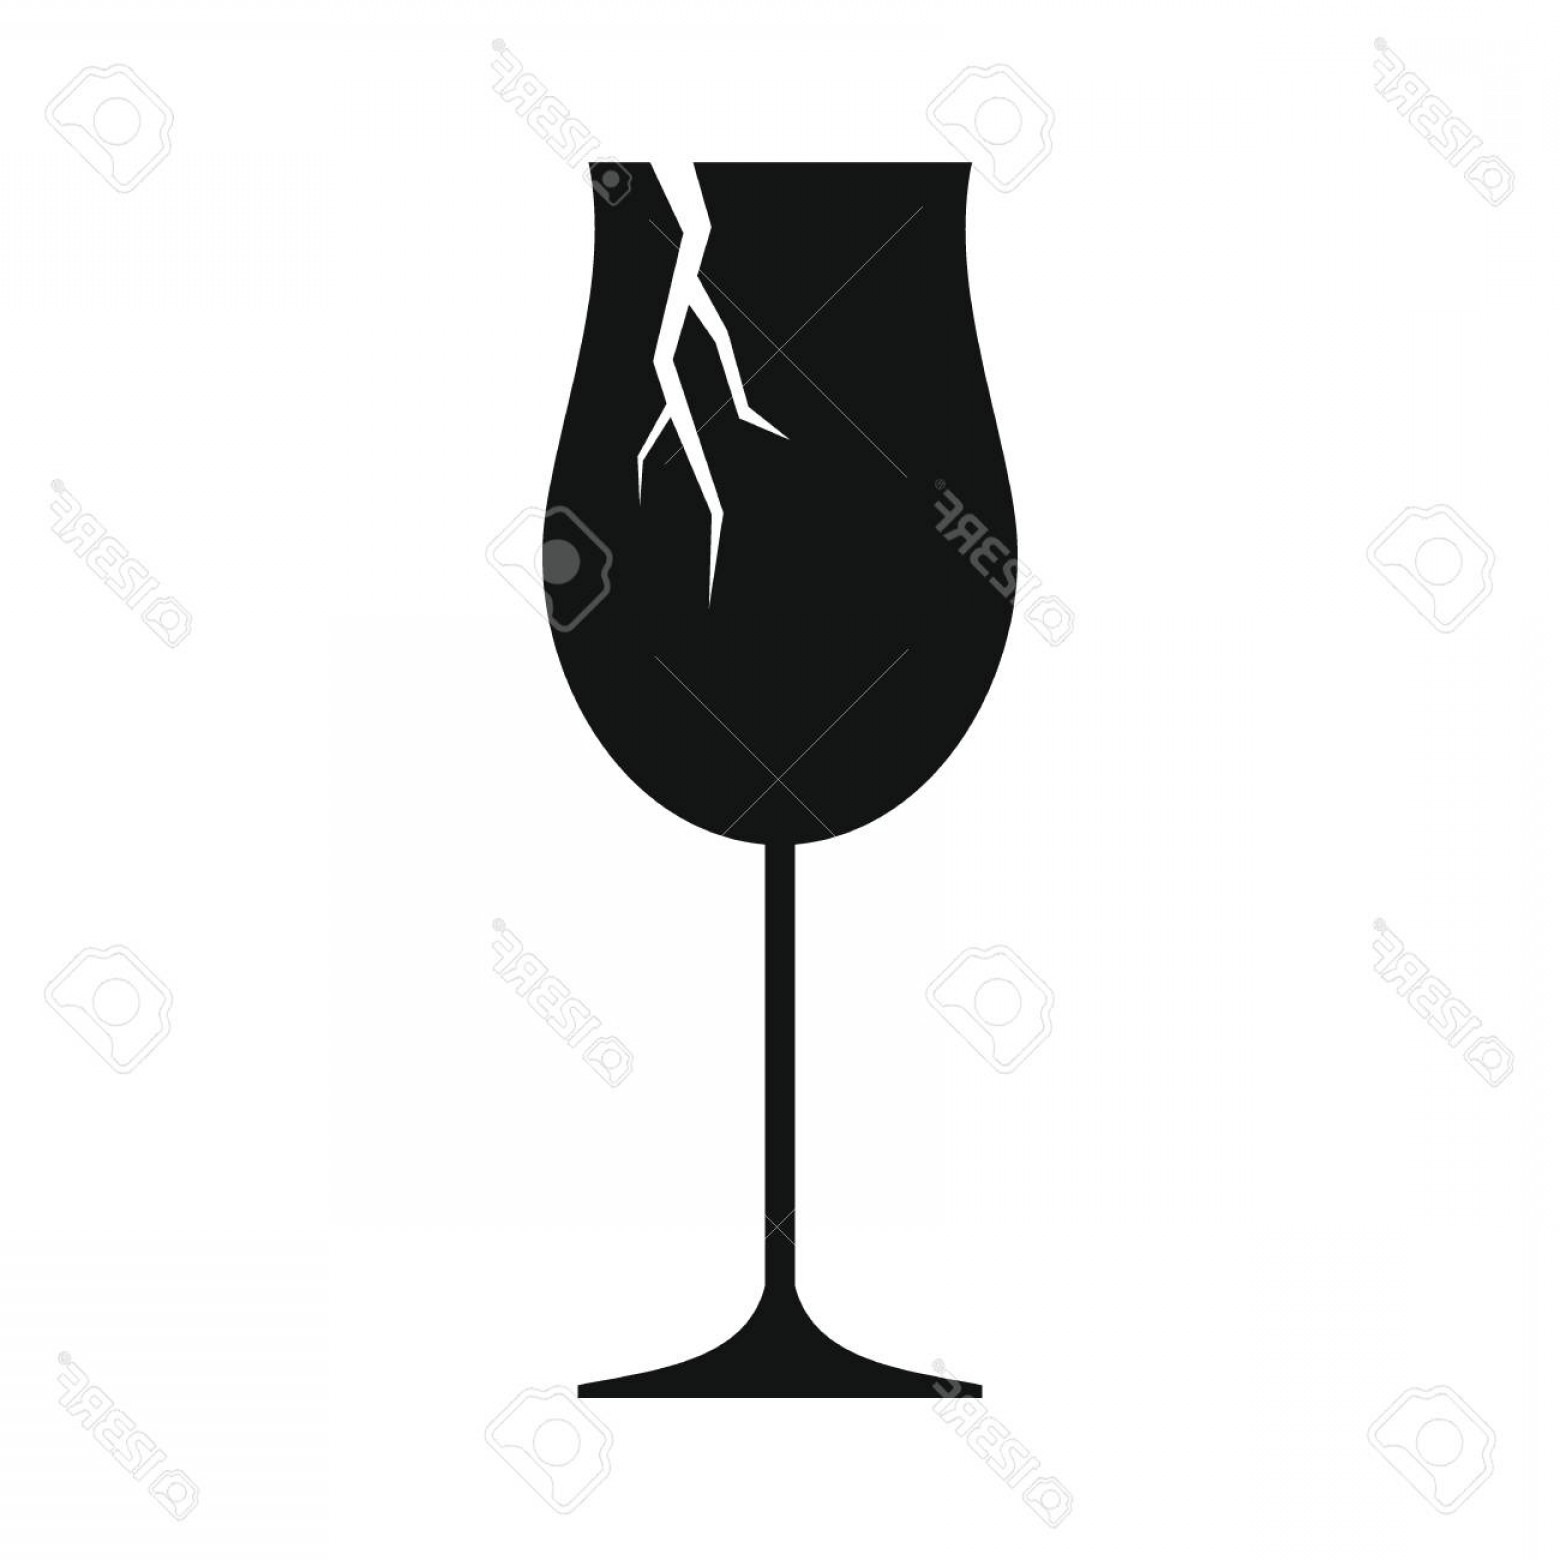 Single Wine Glass Silhouette Vector: Photostock Vector Broken Wine Glass Icon Silhouette Illustration Of Broken Wine Glass Vector Icon For Web